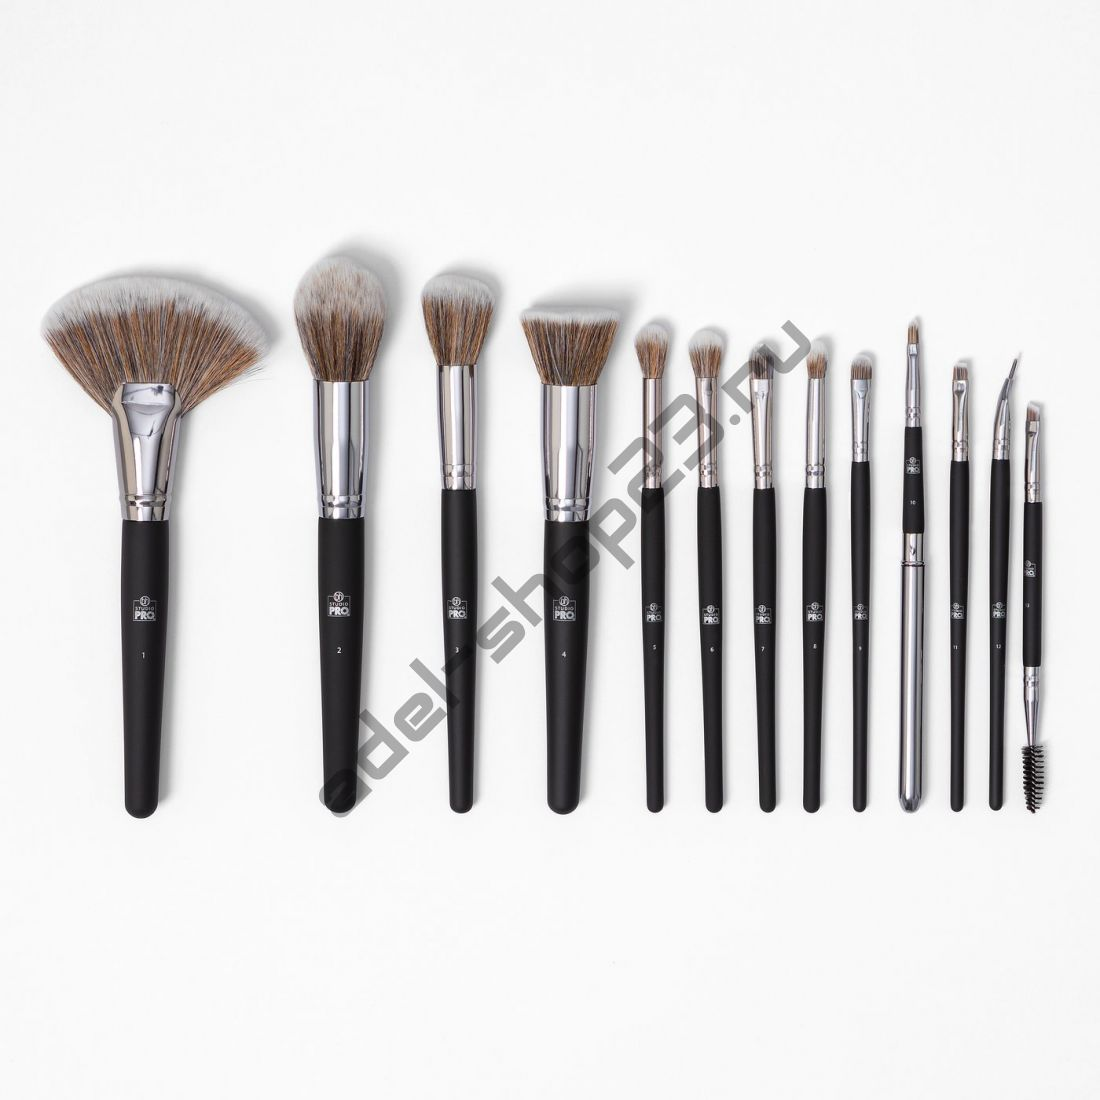 BH COSMETICS - набор из 13 кистей Studio Pro Brush Set